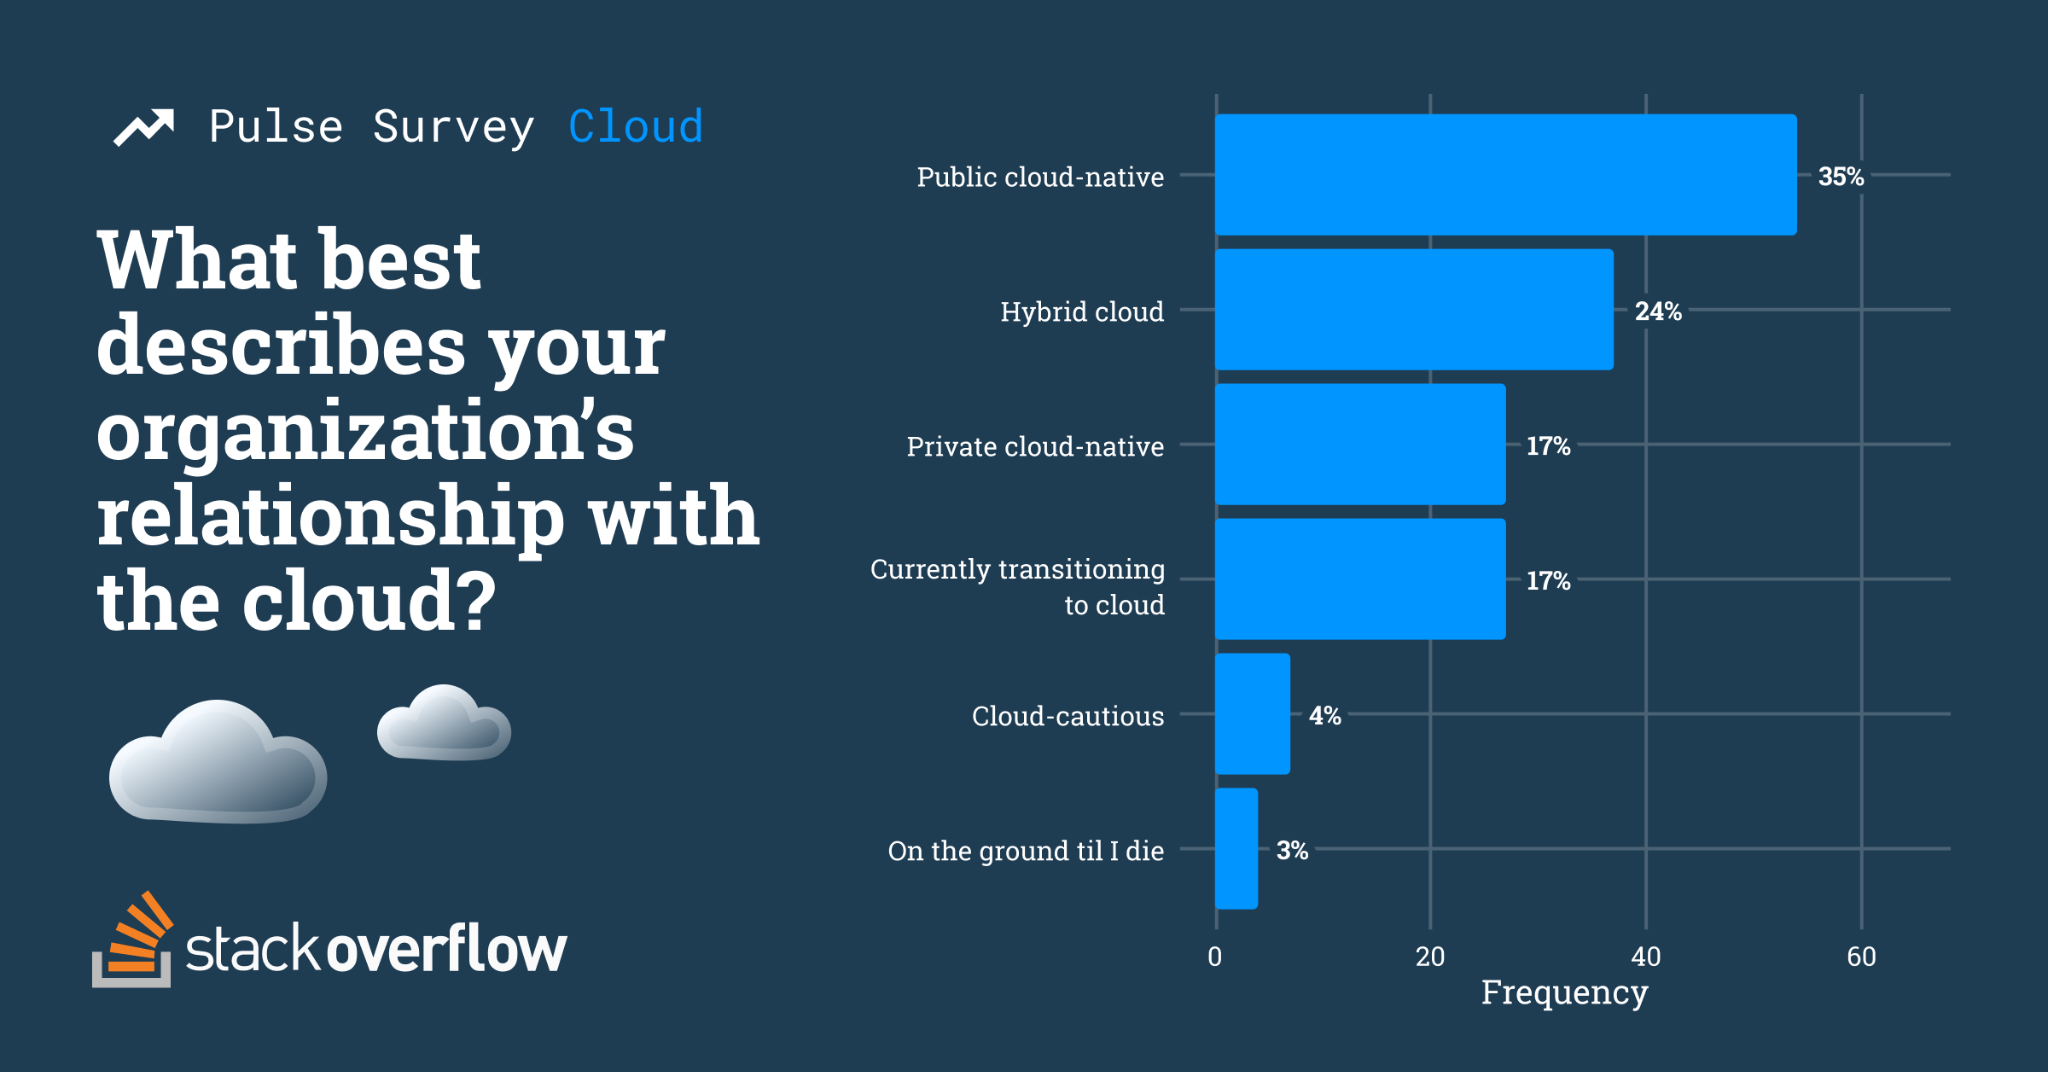 Public cloud-native 54 (35%), Hybrid cloud 37 (24%), Private cloud-native 27 (17%), Currently transitioning to cloud 27 (17%), Cloud-cautious 7 (4%), On the ground til I die 4 (3%)